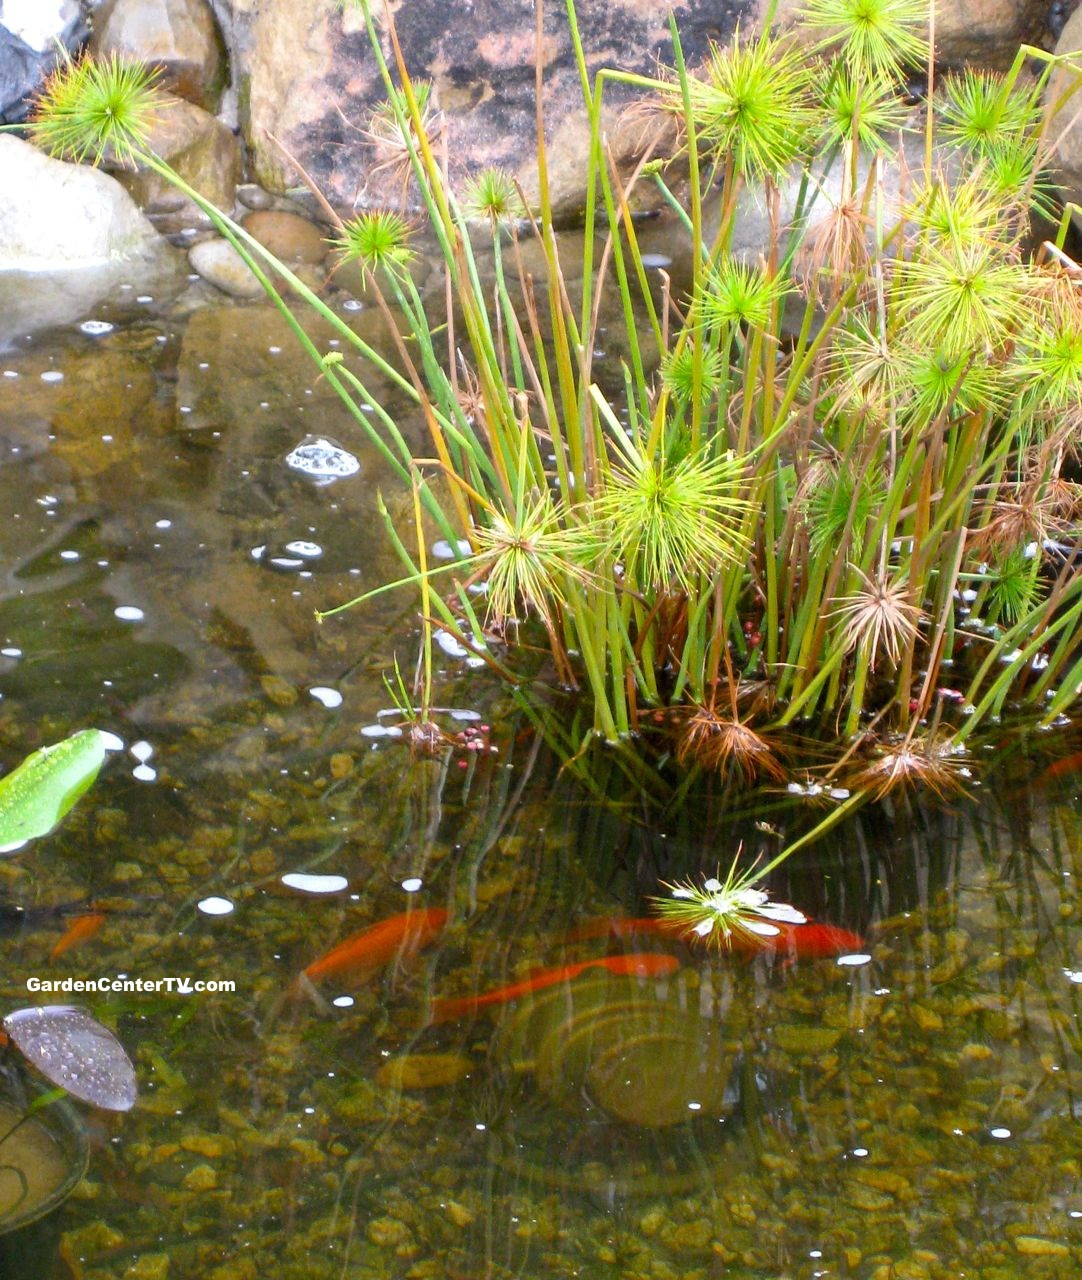 Papayrus plant in pond with koi fish garden center tv for Koi pond garden